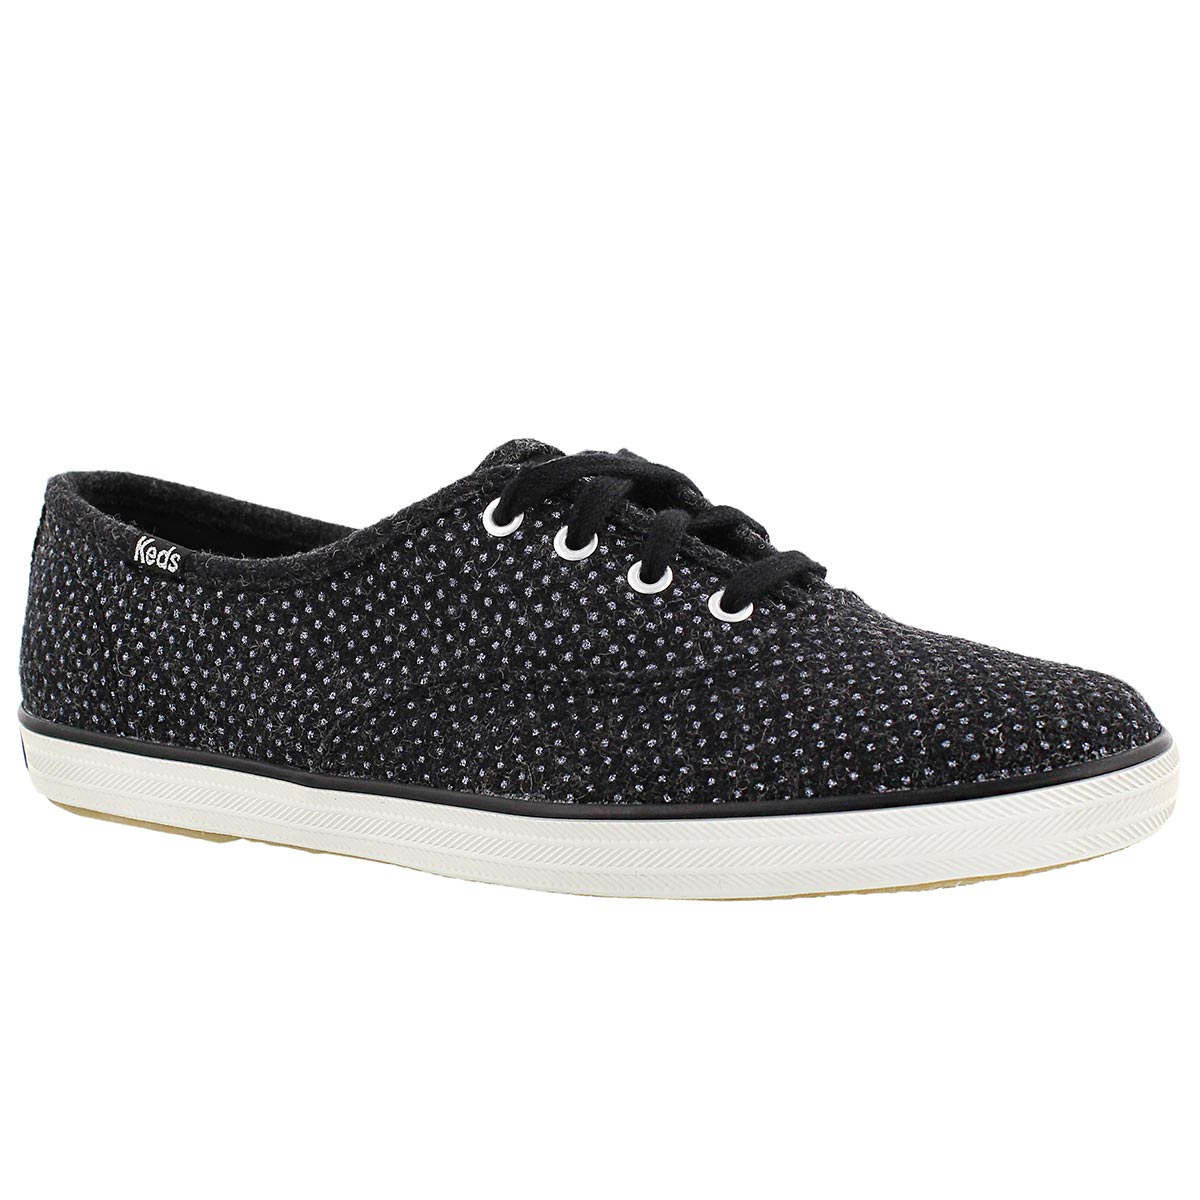 Women's CHAMPION GLITTER WOOL black sneakers